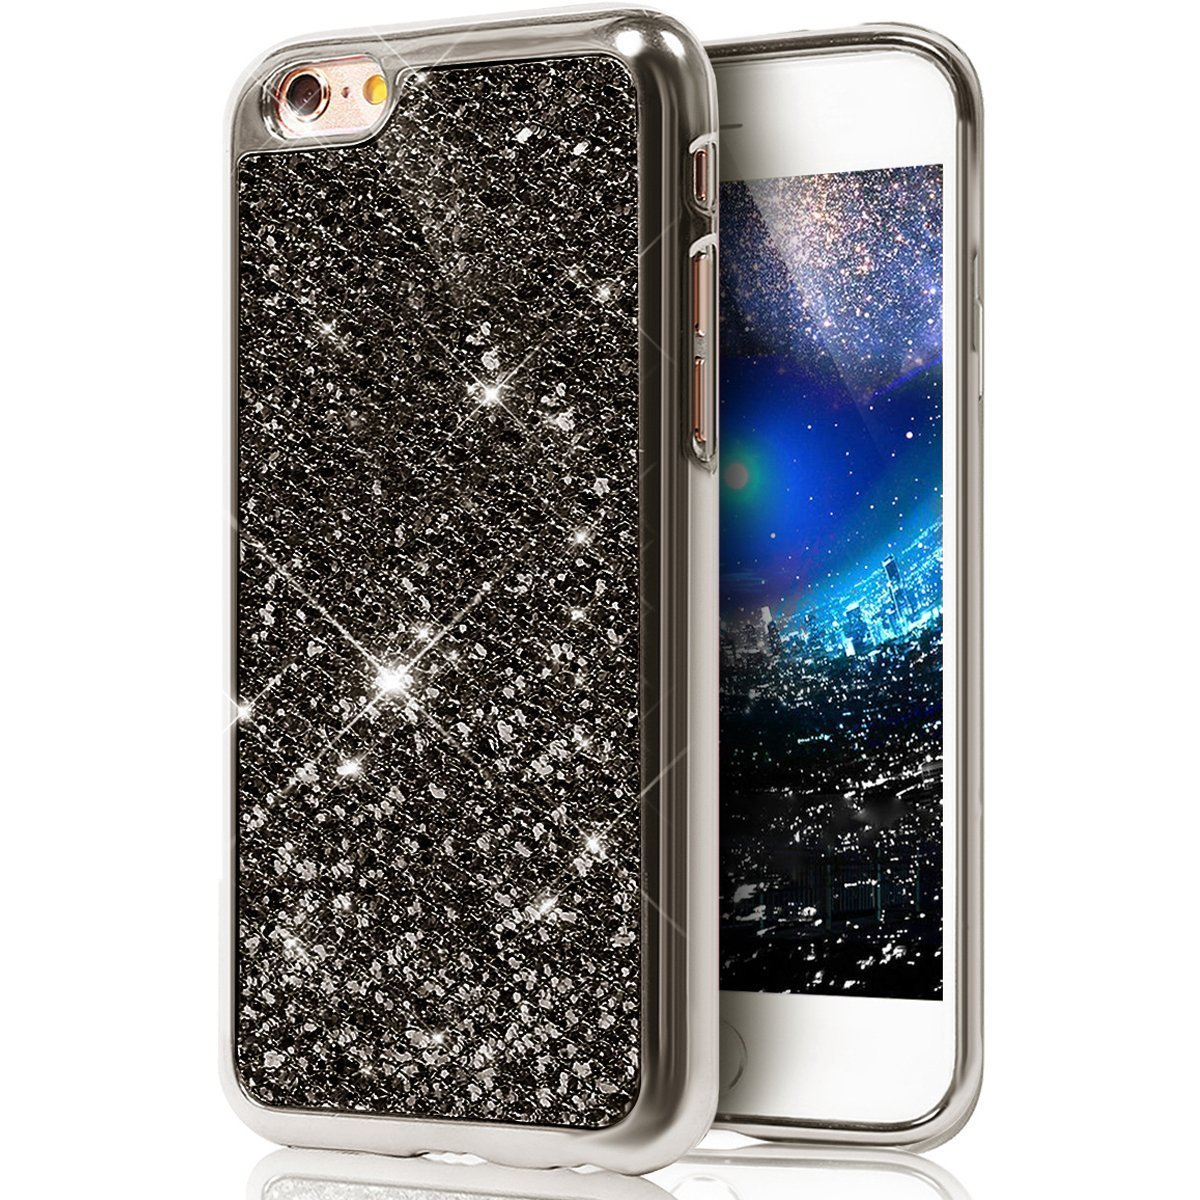 iPhone 6S Plus Custodia, iPhone 6 Plus Cover, iPhone 6 Plus 5.5 Custodia Silicone, JAWSEU Moda Stile Lusso Cristallo di Bling Brillante Sparkle Glitter Custodia per iPhone 6 Plus 6S Plus Back Cover Case Gomma Ultra Sottile Flessibile Morbida Silicone TPU C